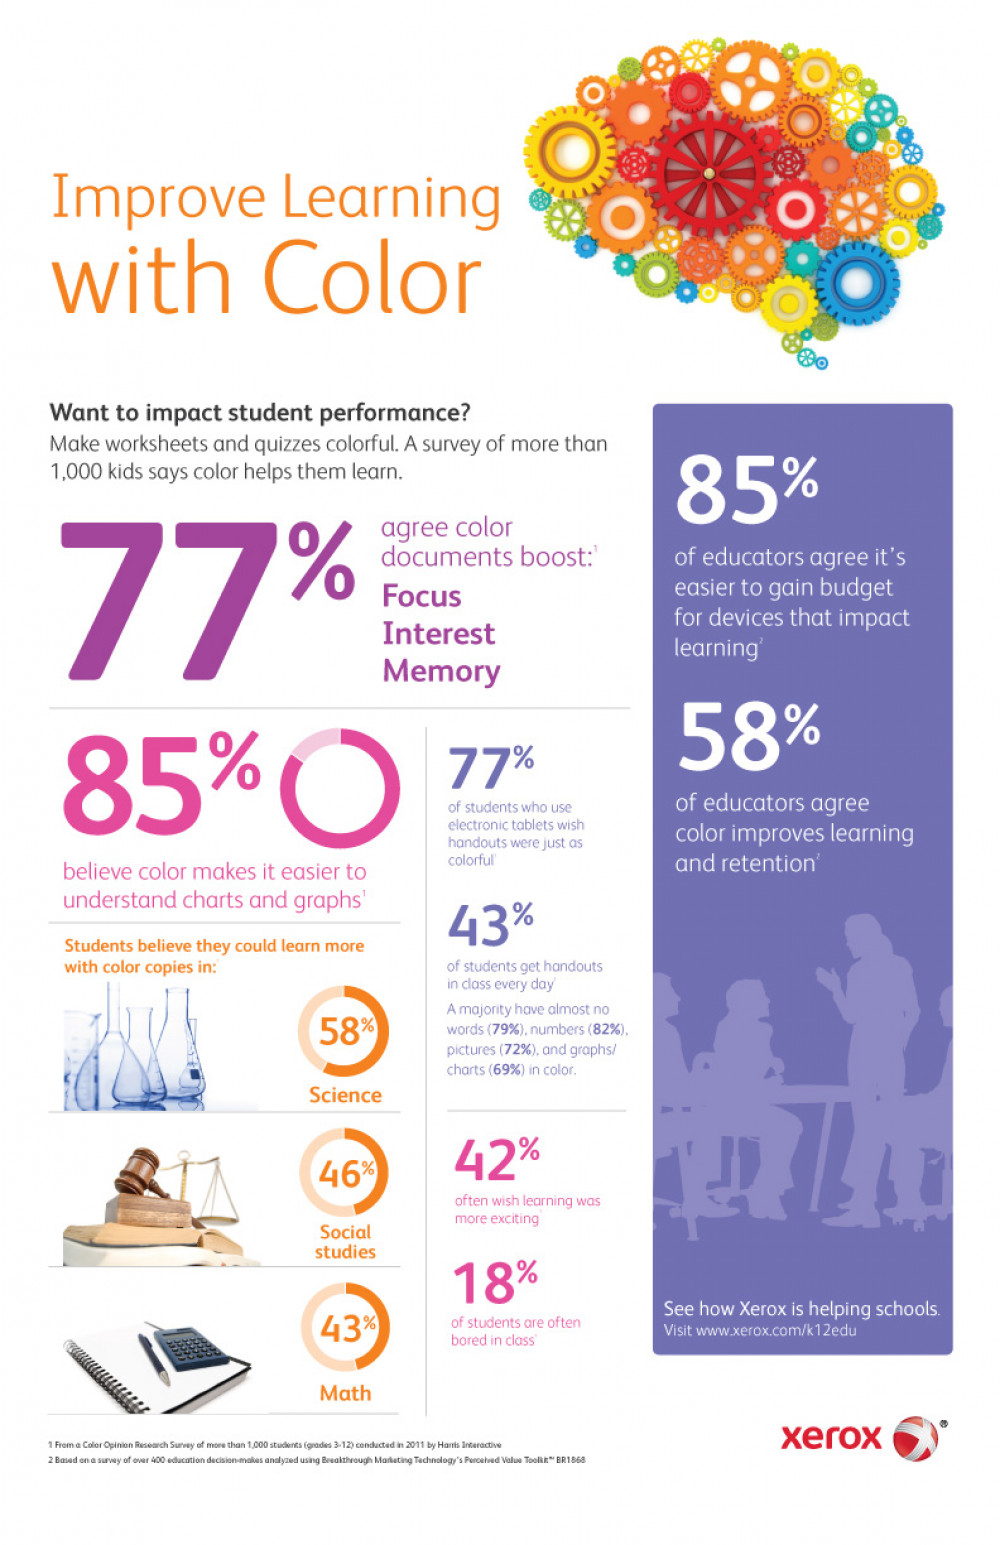 Improve Learning with Color